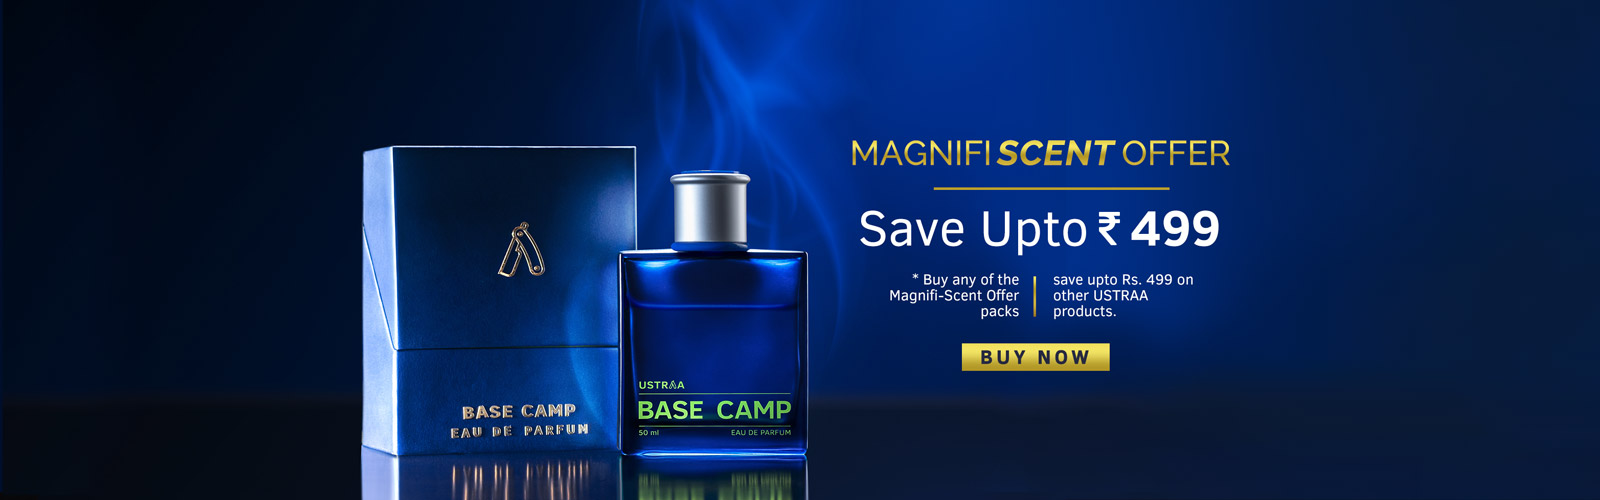 Magnifi-scent offer